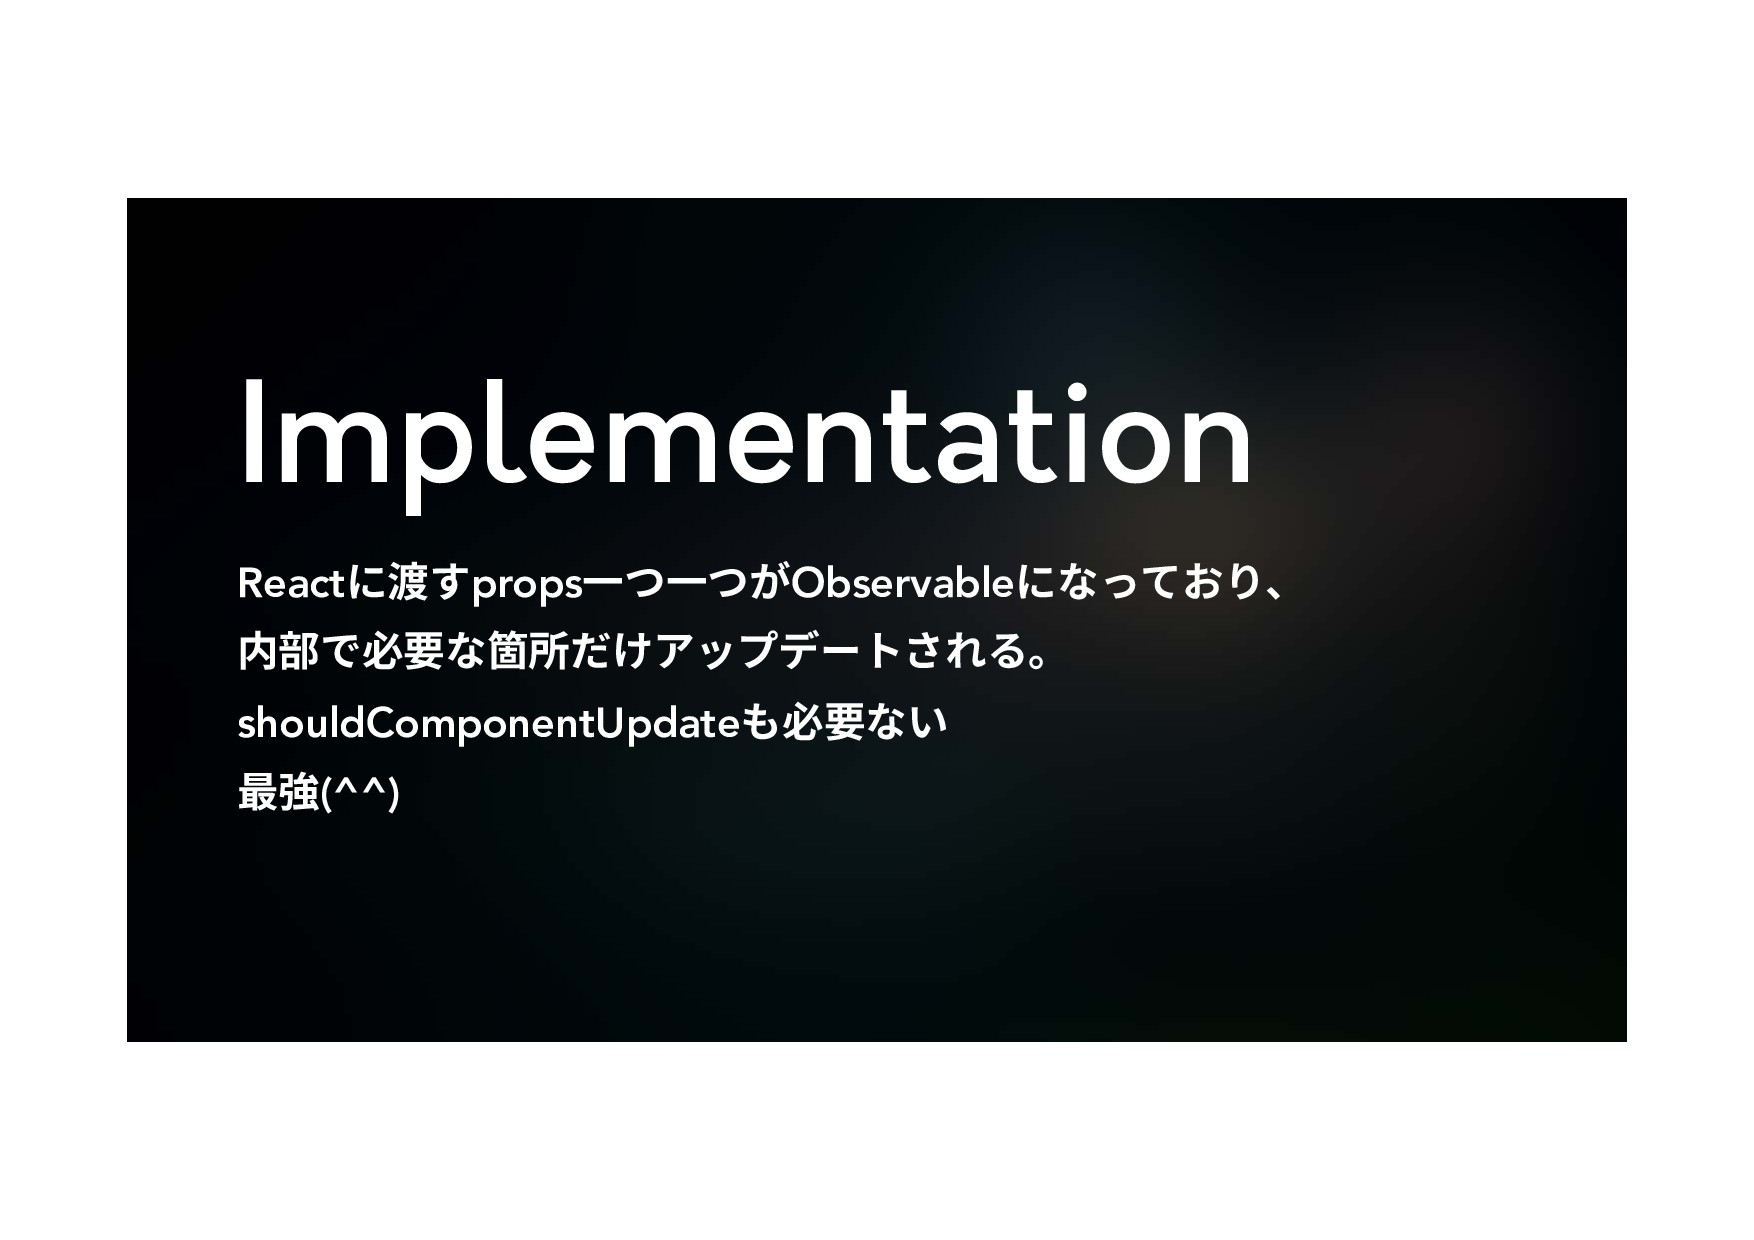 Implementation Reactח床ׅprops♧א♧אָObservableחז׏...